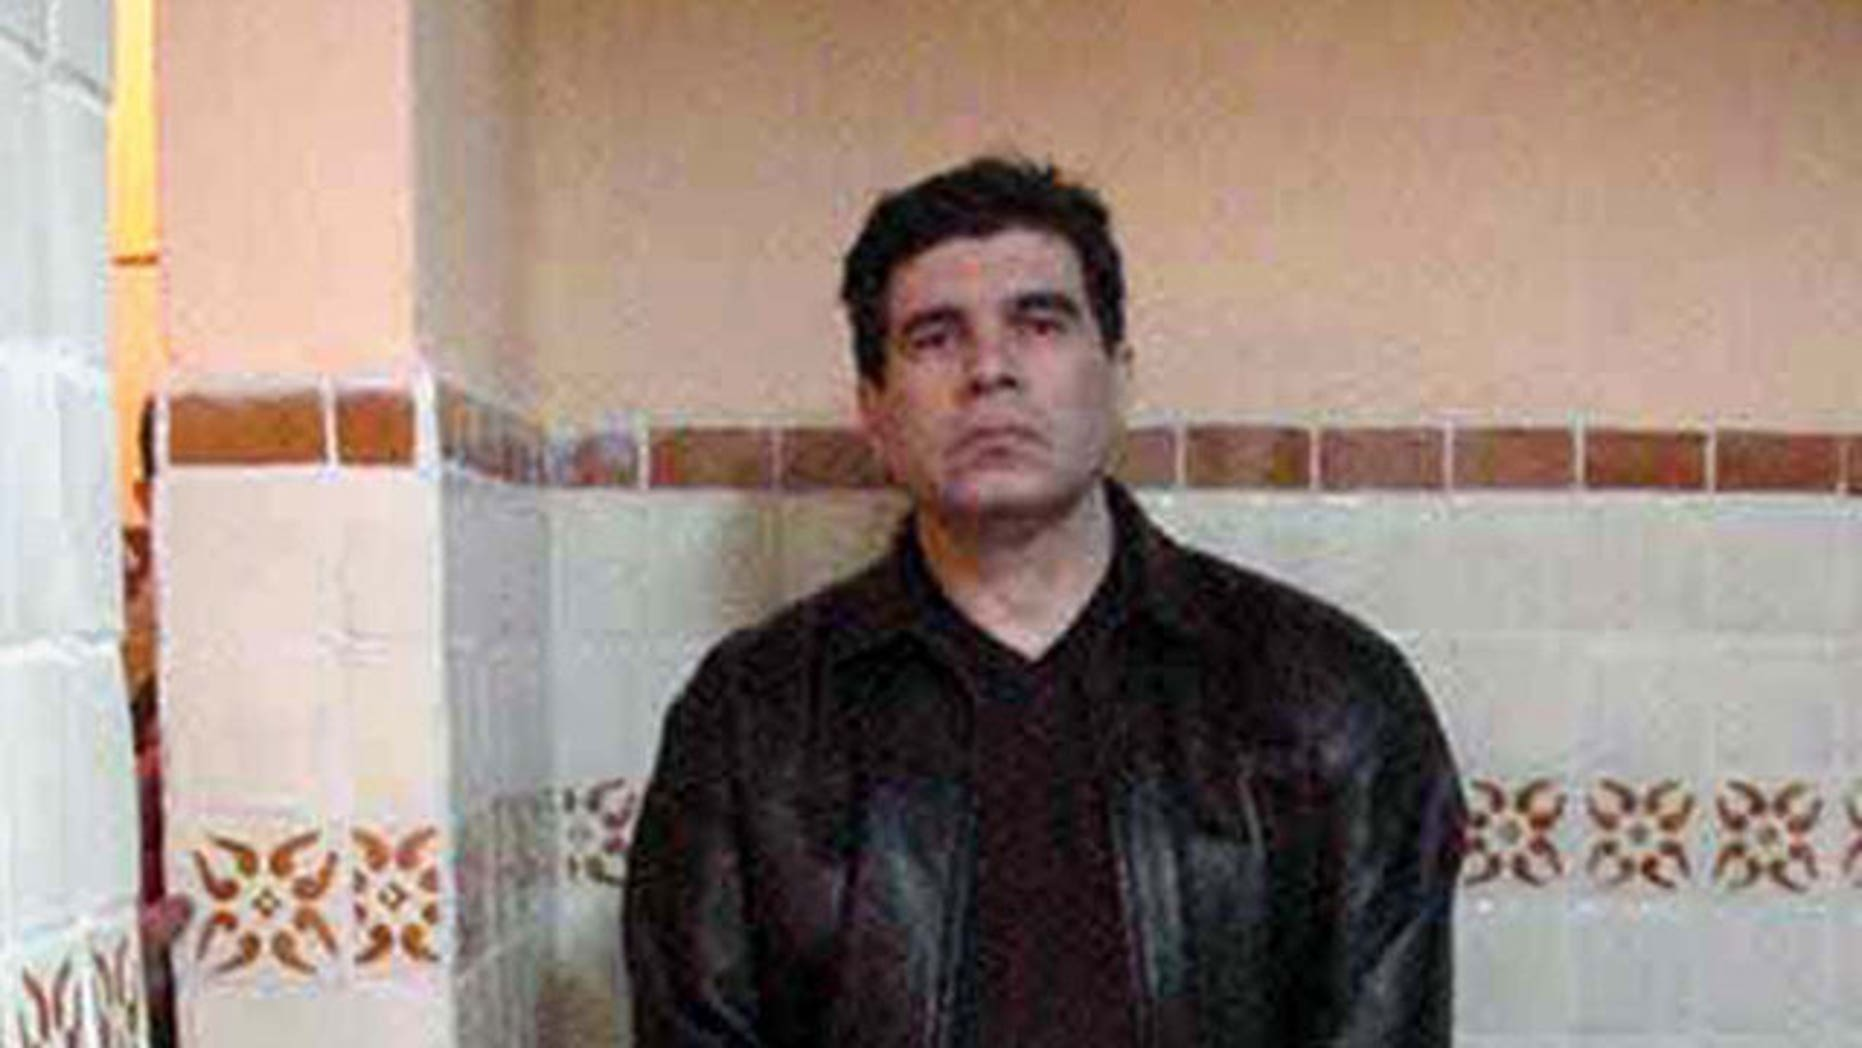 In this March 9, 2002 file photo released by Mexico's Attorney General's Office, Benjamin Arellano Felix stands in his home the day of his arrest in Puebla, Mexico.